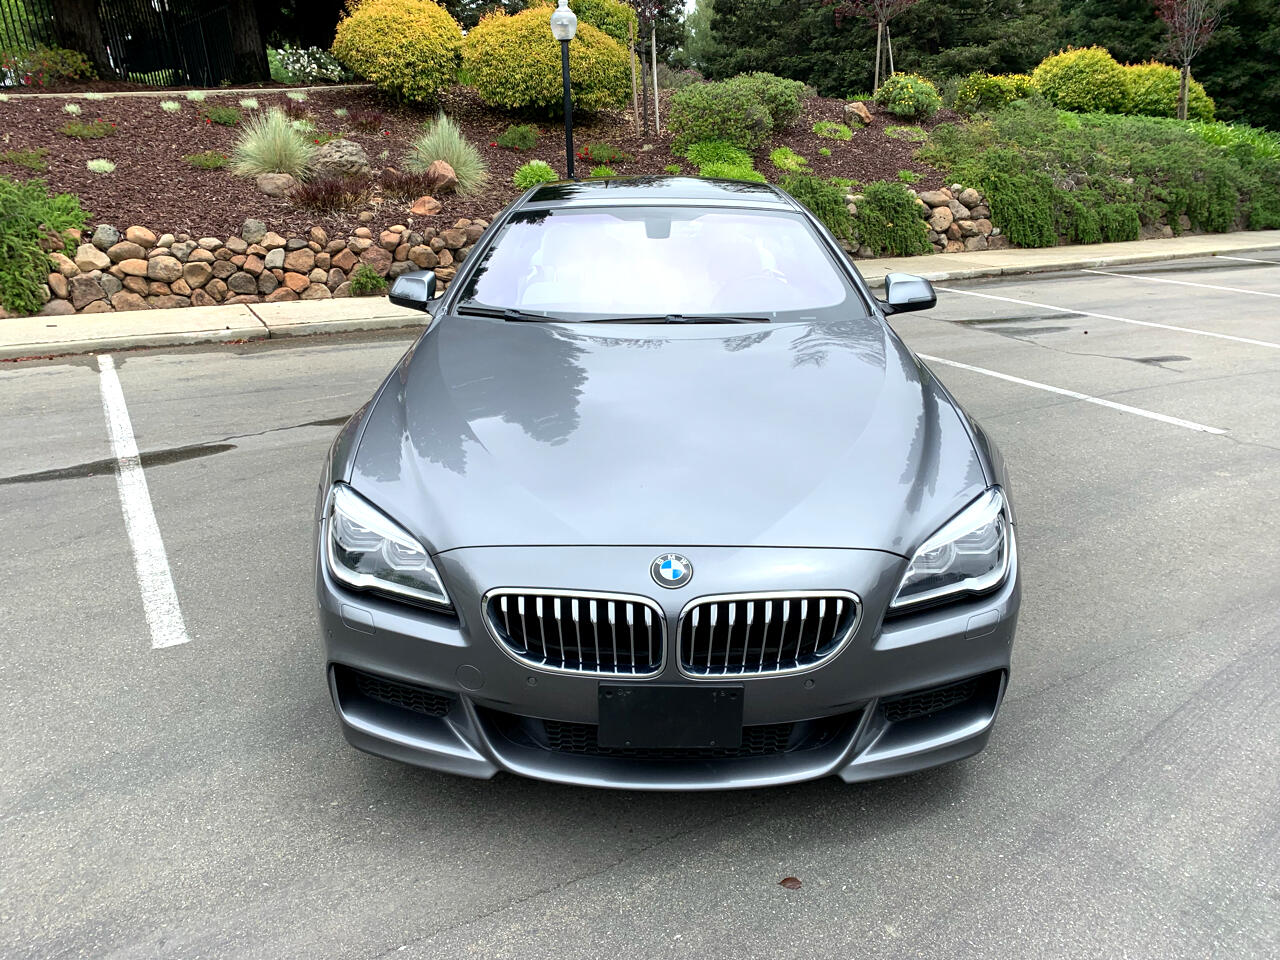 2016 BMW 6-Series Gran Coupe 6401 GRAND SPORT M SPORT PACKAGE